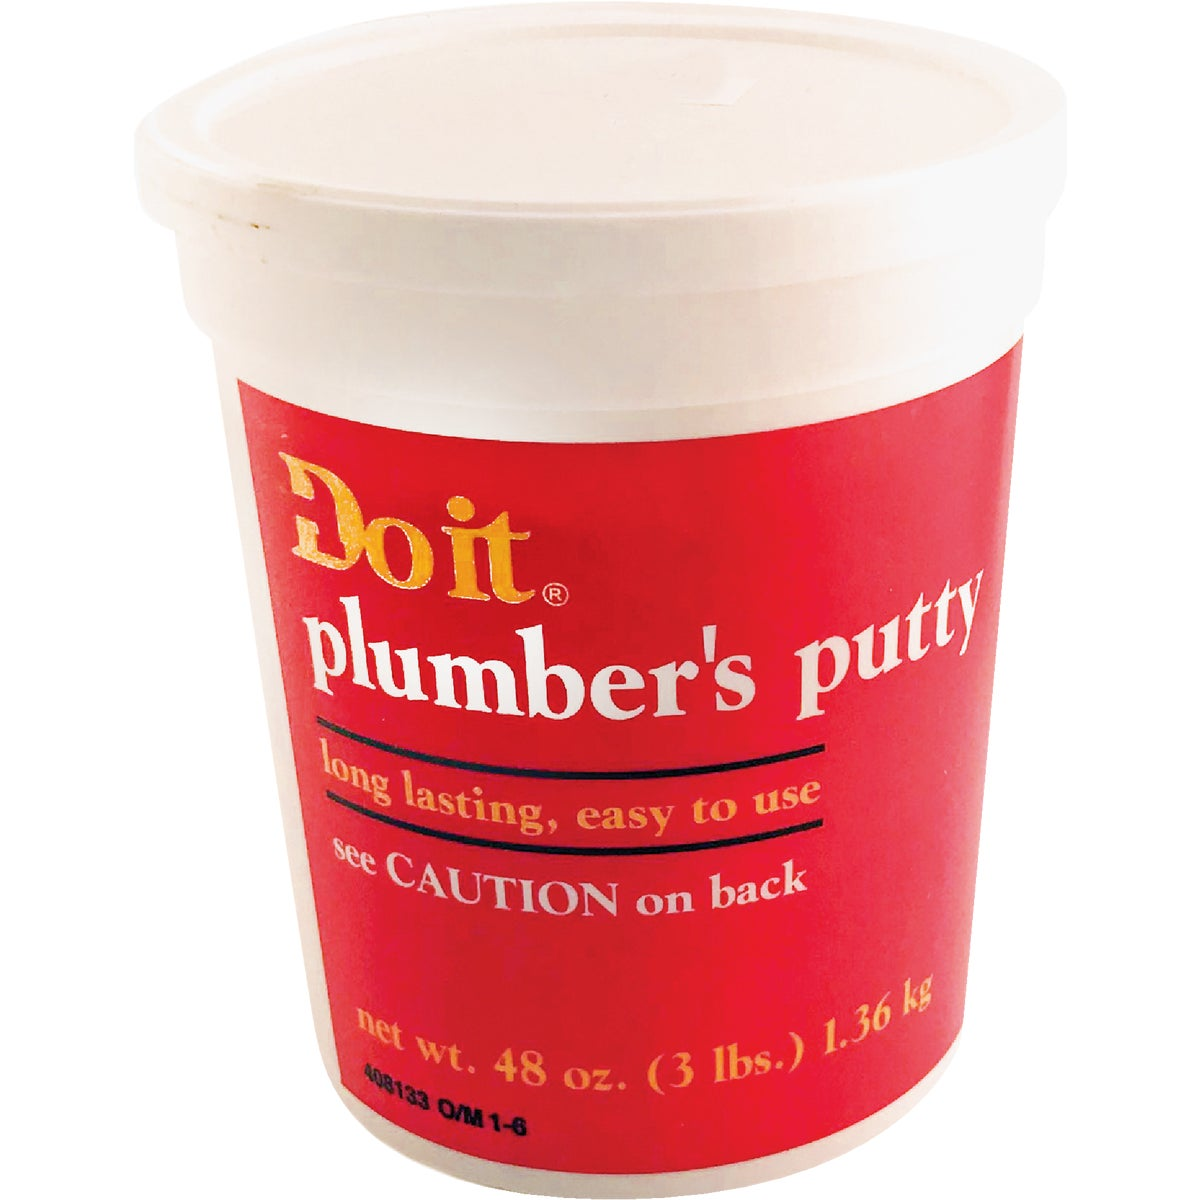 3LB PLUMBERS PUTTY